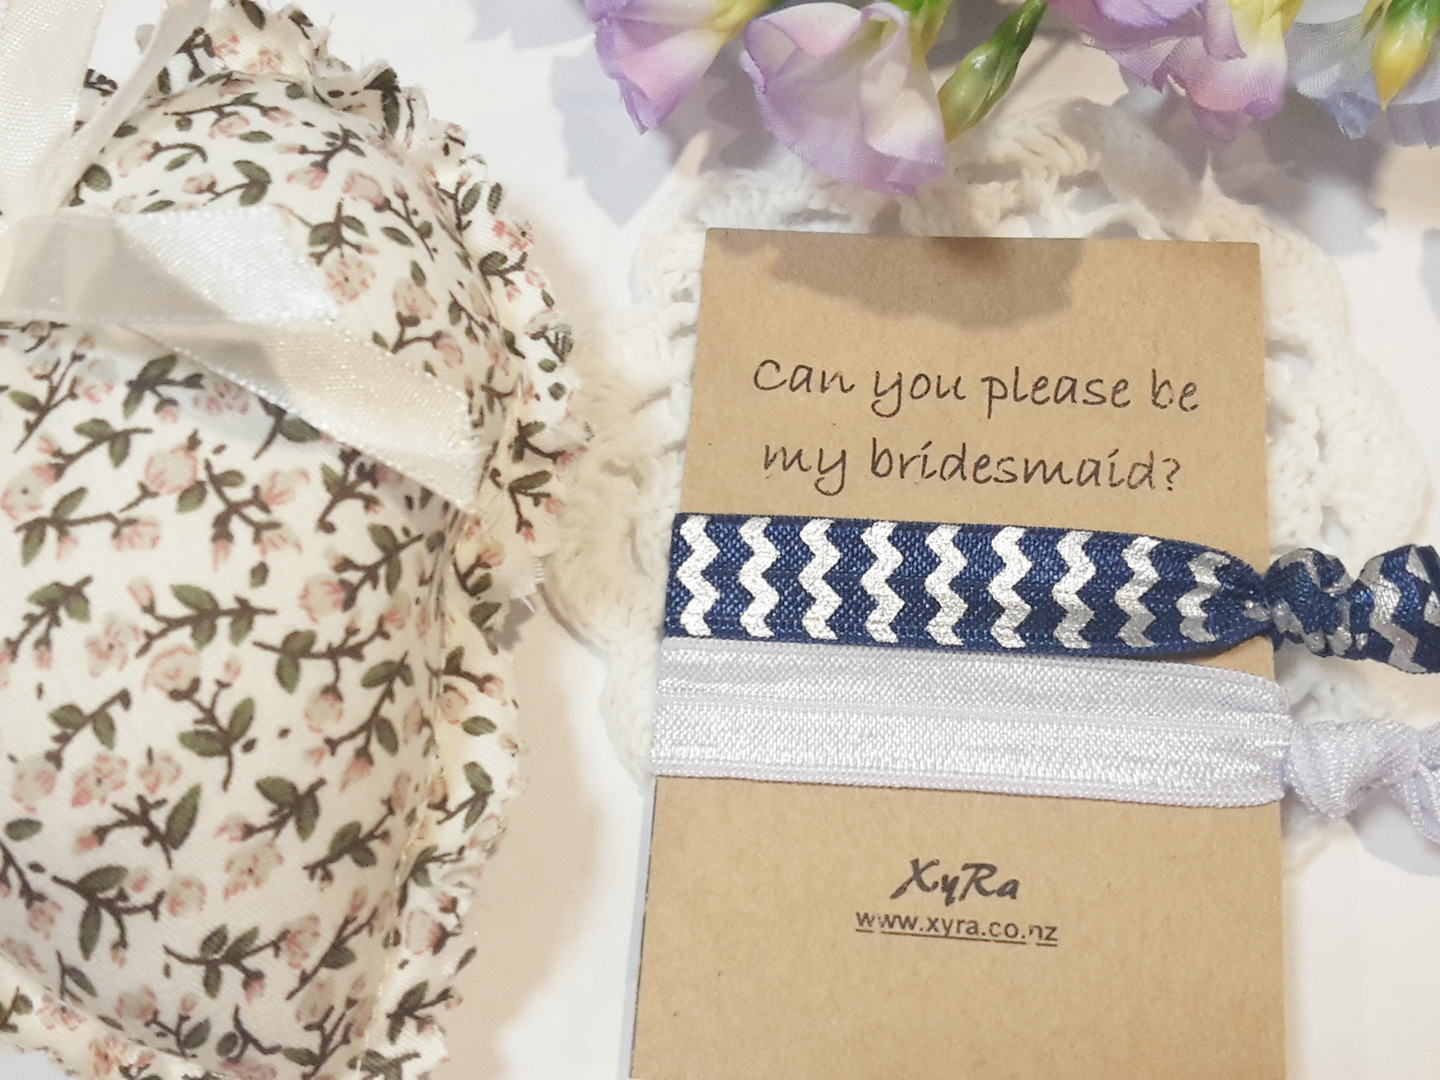 Looking for bridesmaids - you can do it with our hair ties with personalized message.